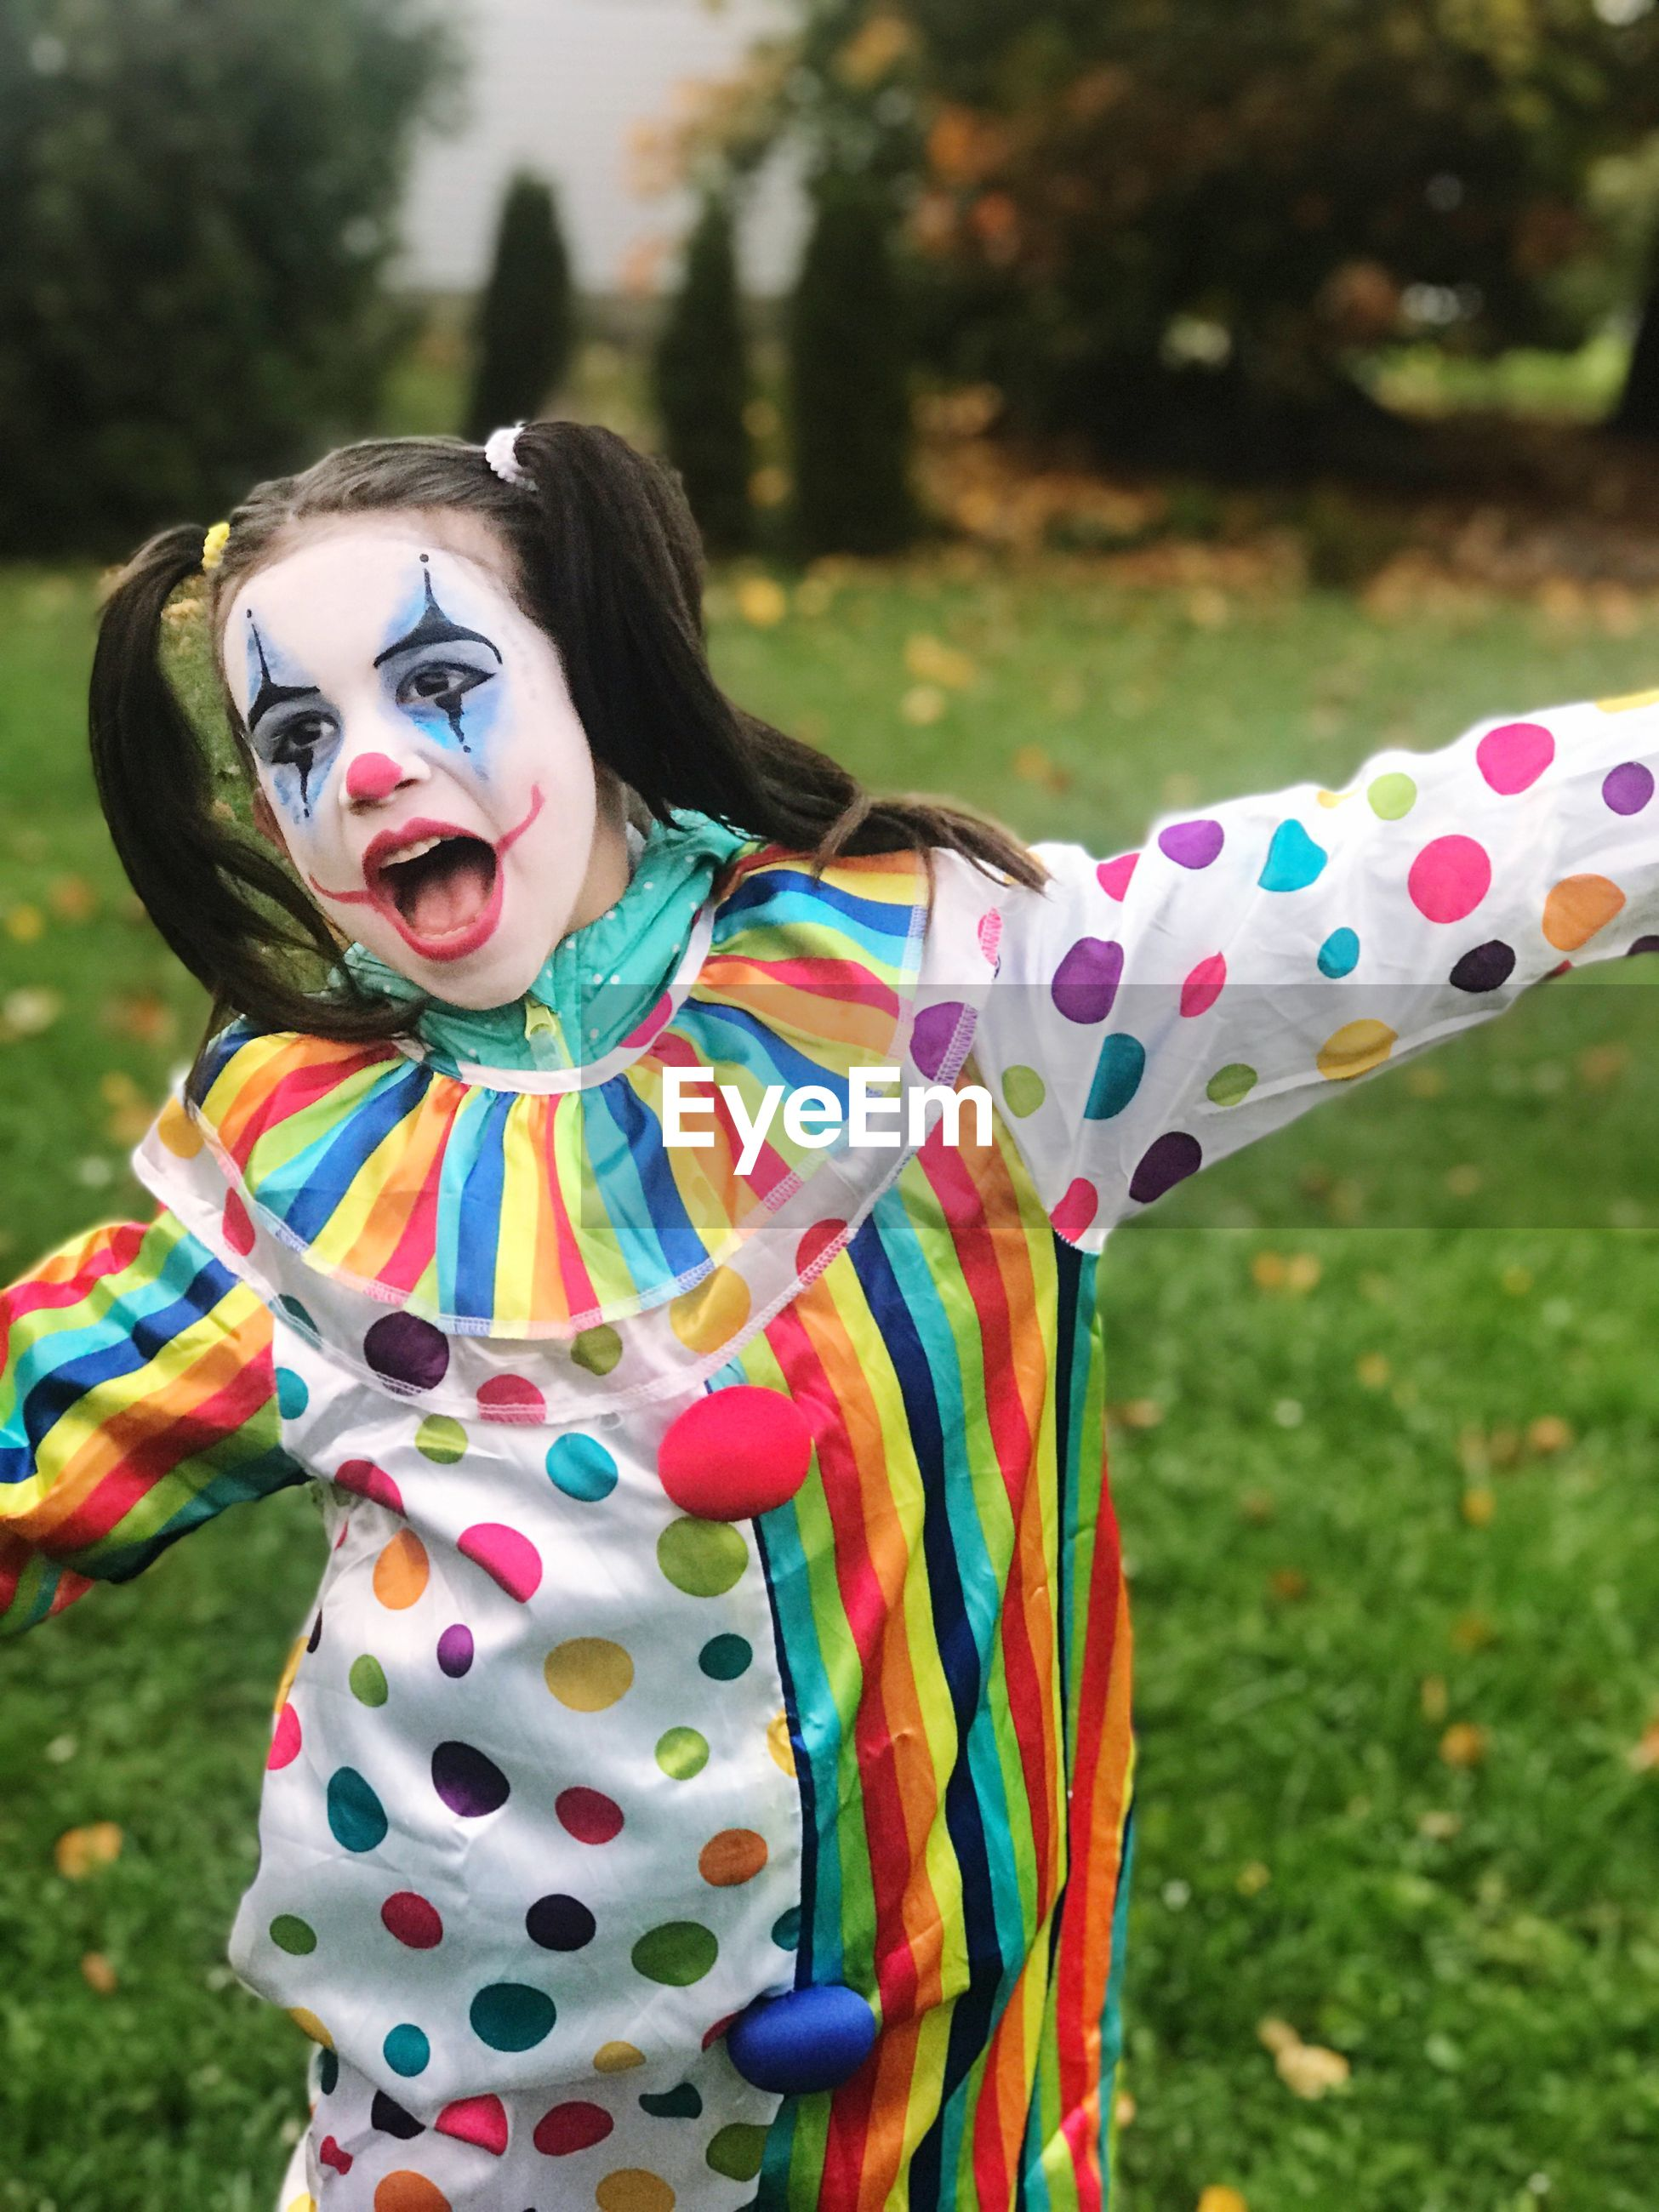 Thoughtful girl wearing clown costume while standing in yard